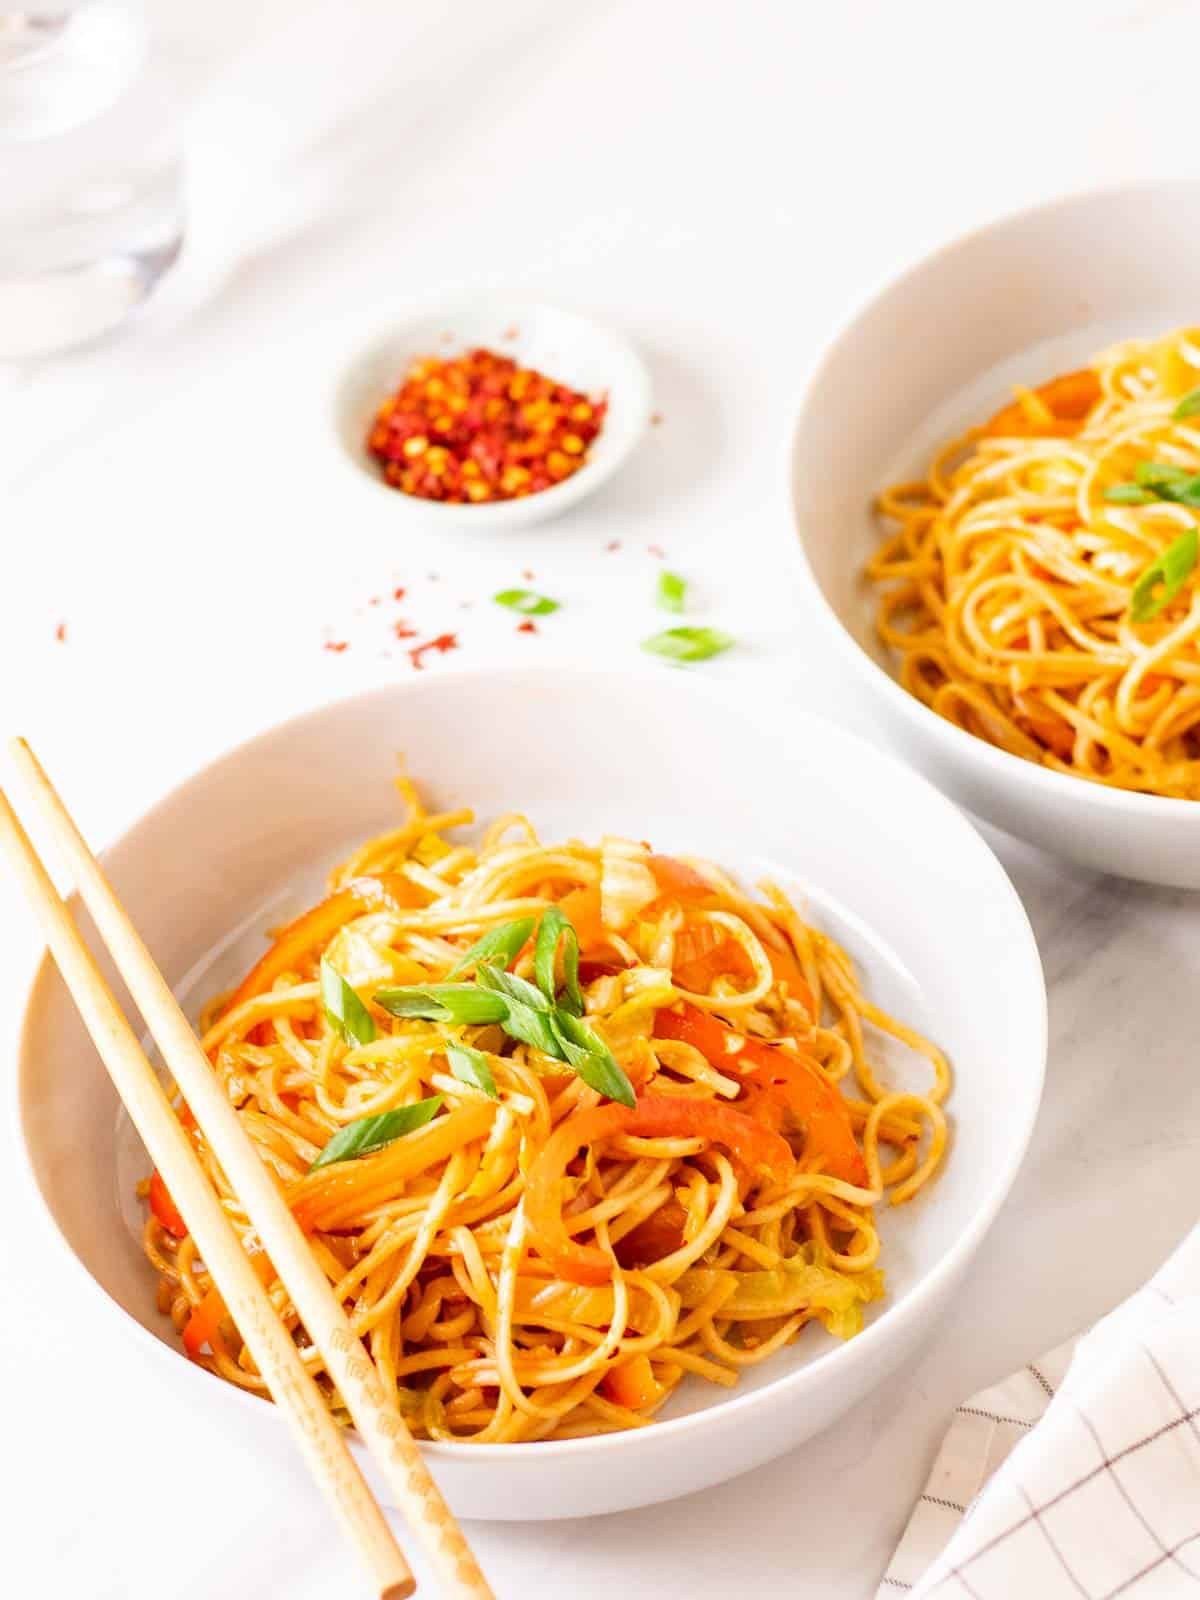 Gochujang noodles served in 2 deep plates topped with chopped green onion.